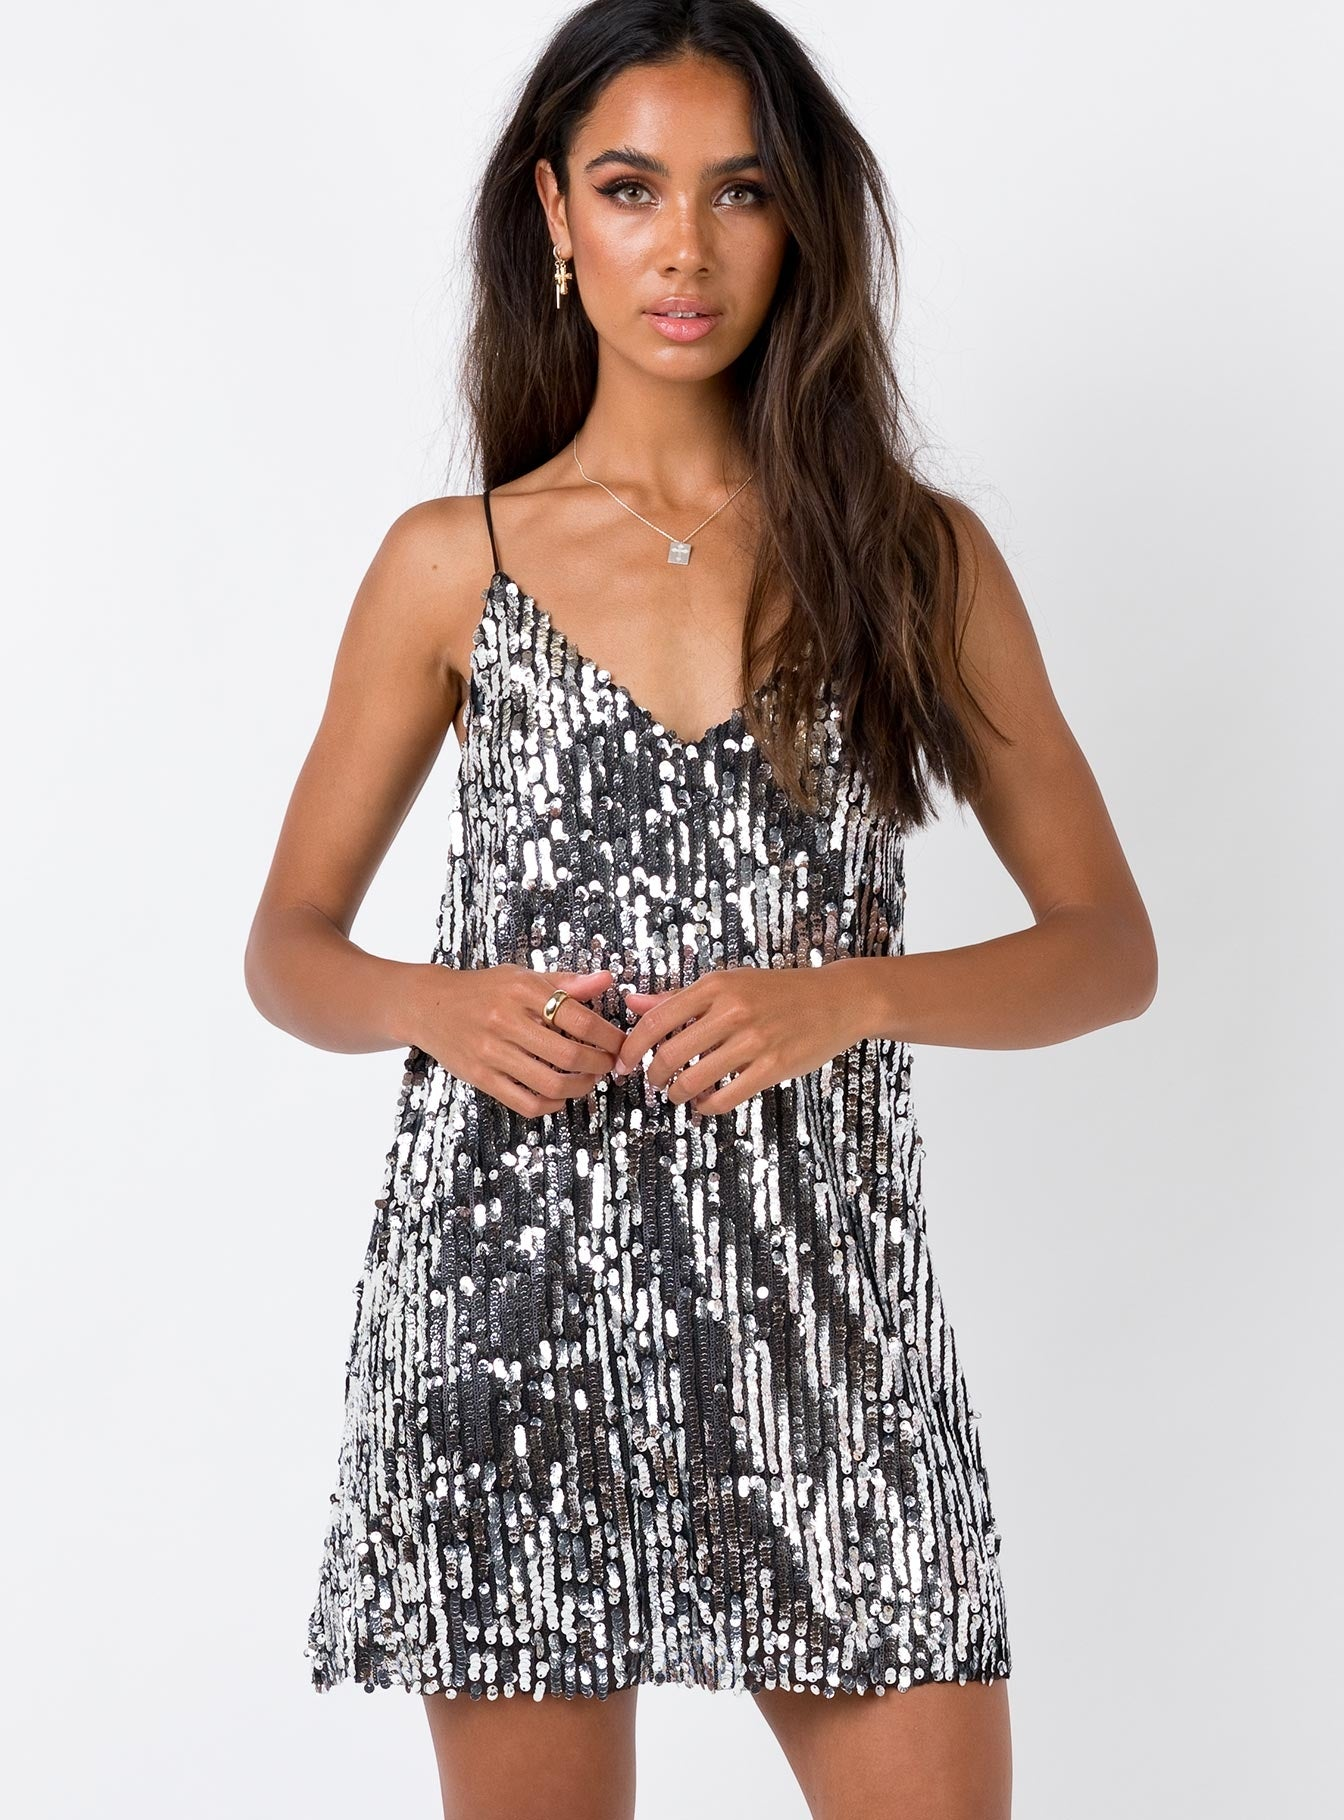 Night Fever Sequin Mini Dress Black/Silver